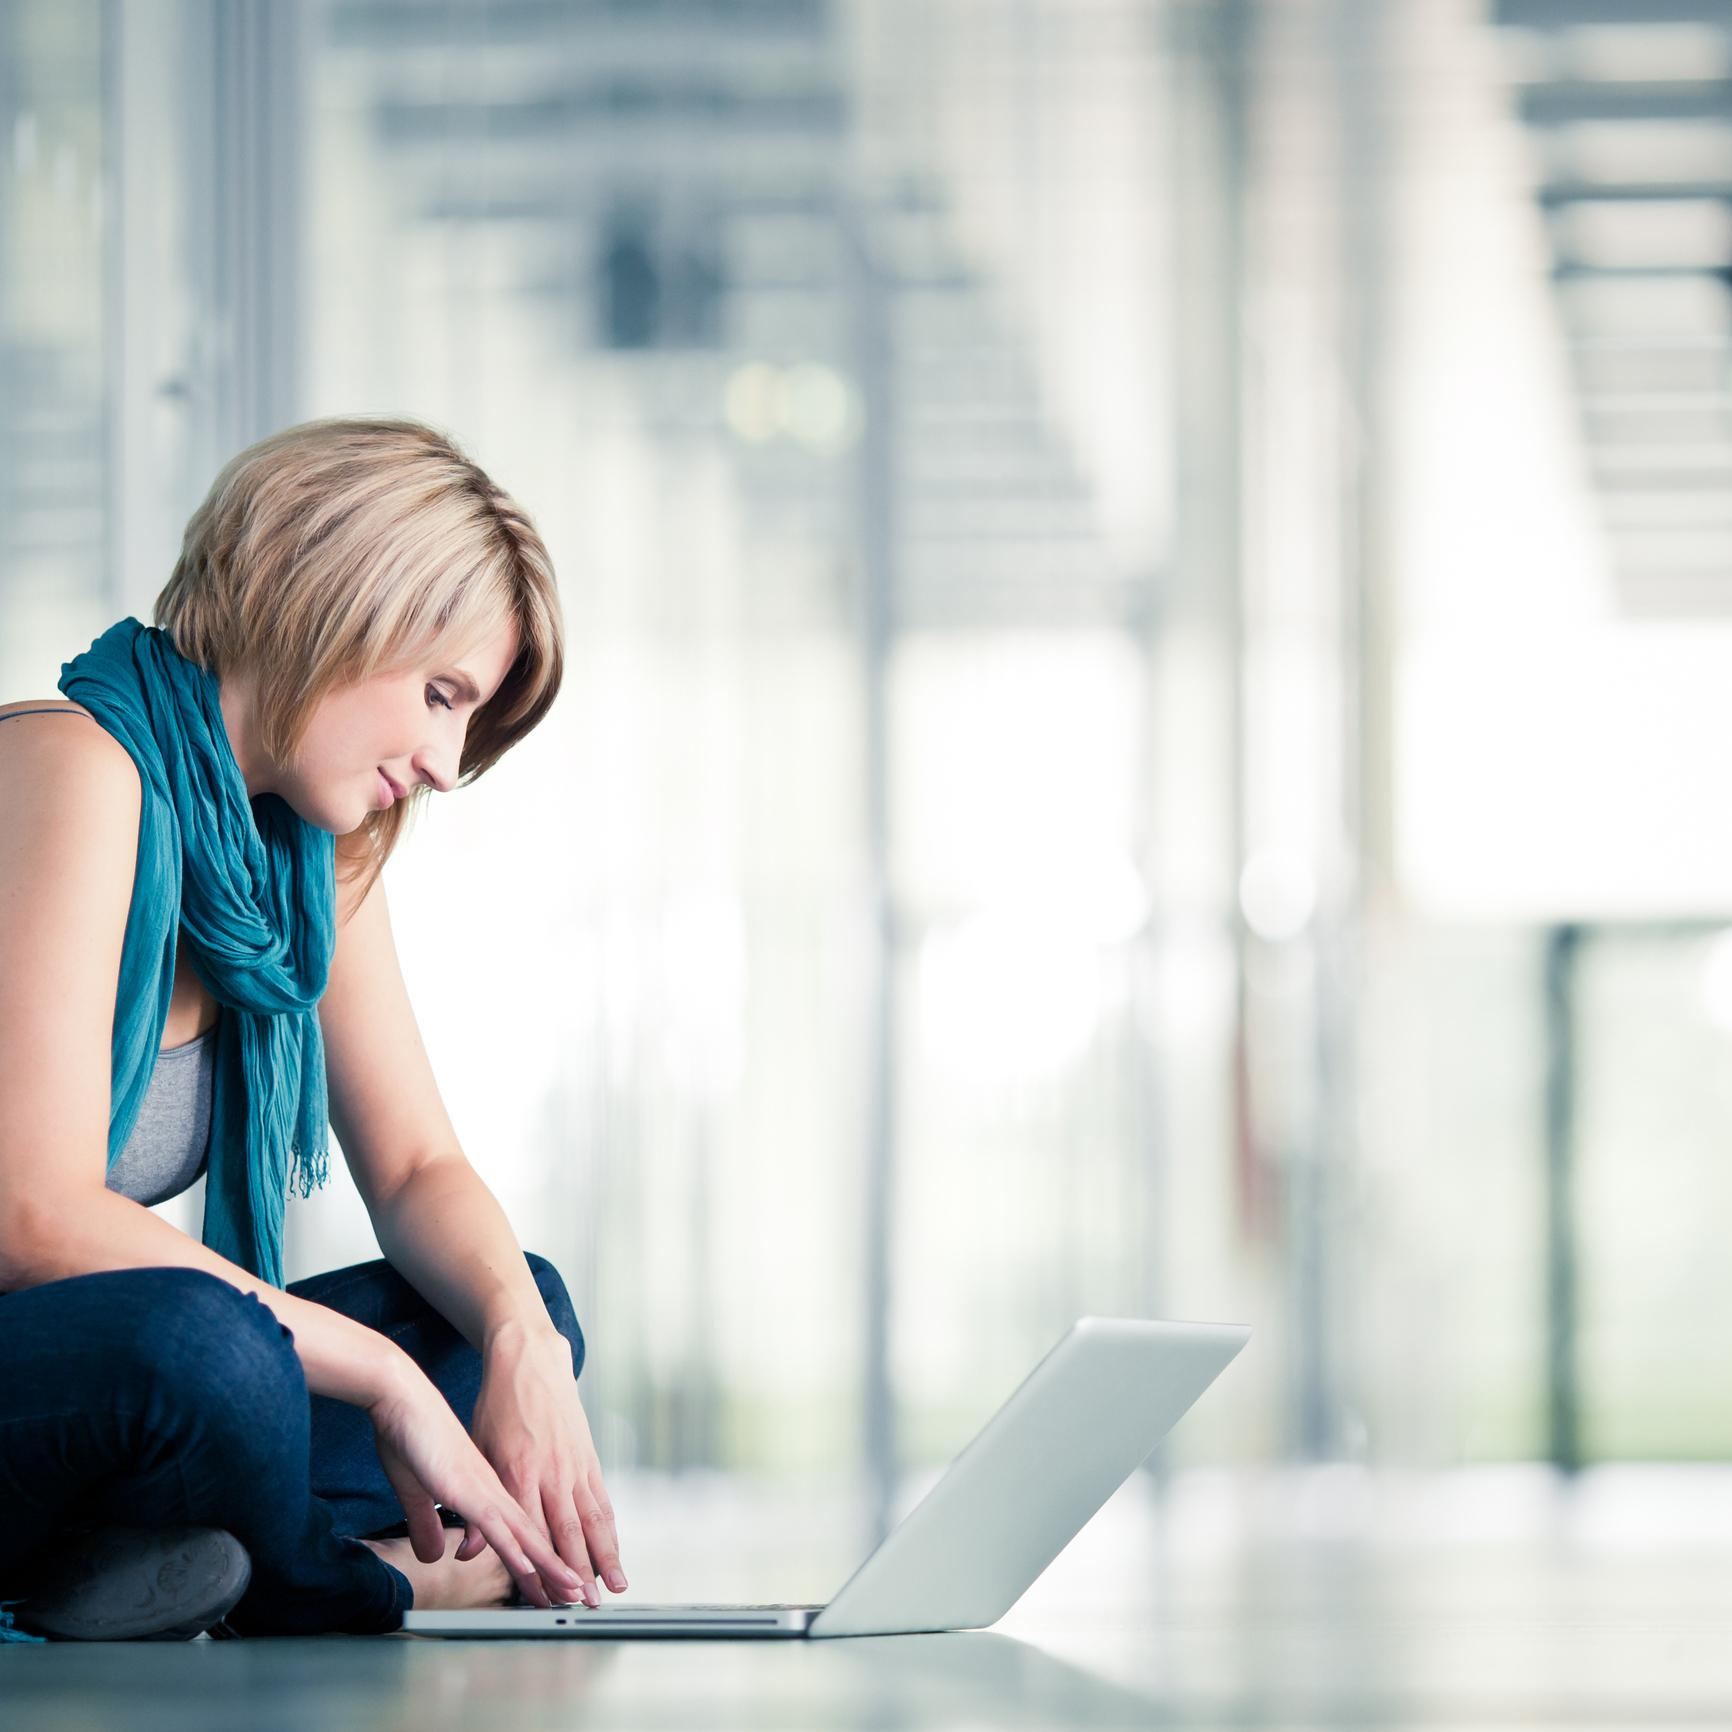 In a sunny hallway, a student sits on the floor using her laptop.